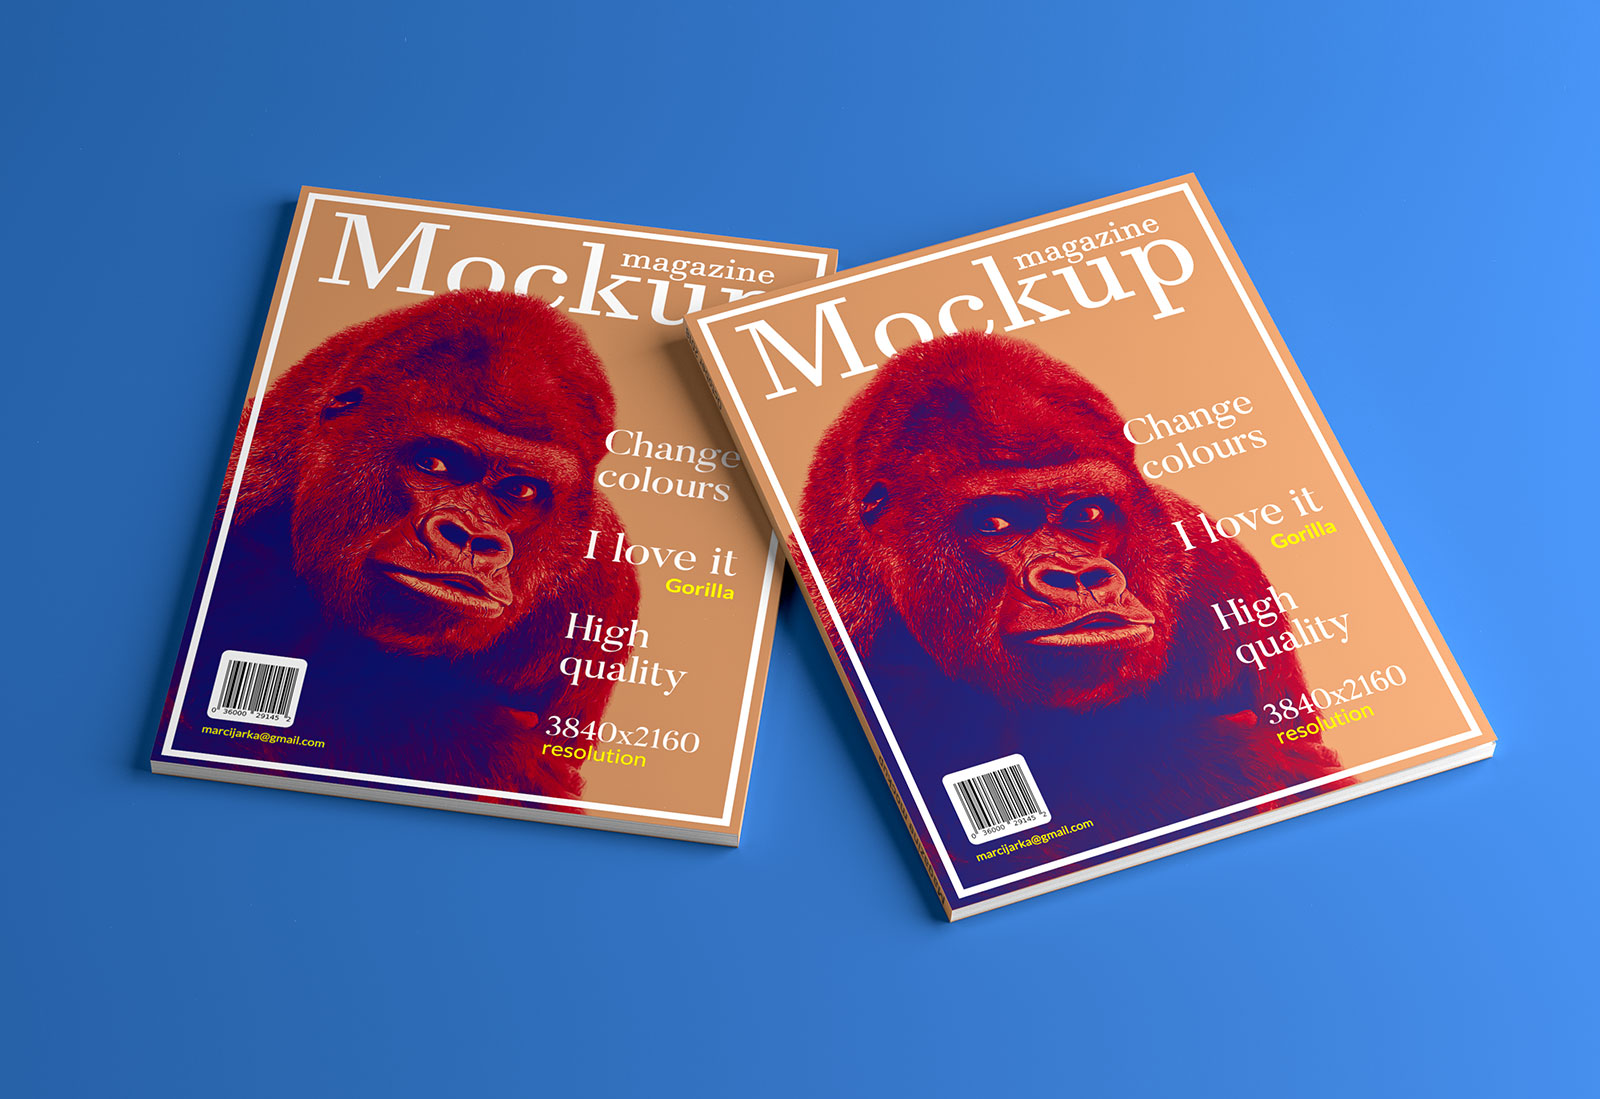 Free-High-Quality-Magazine-Mockup-PSD-Set-2